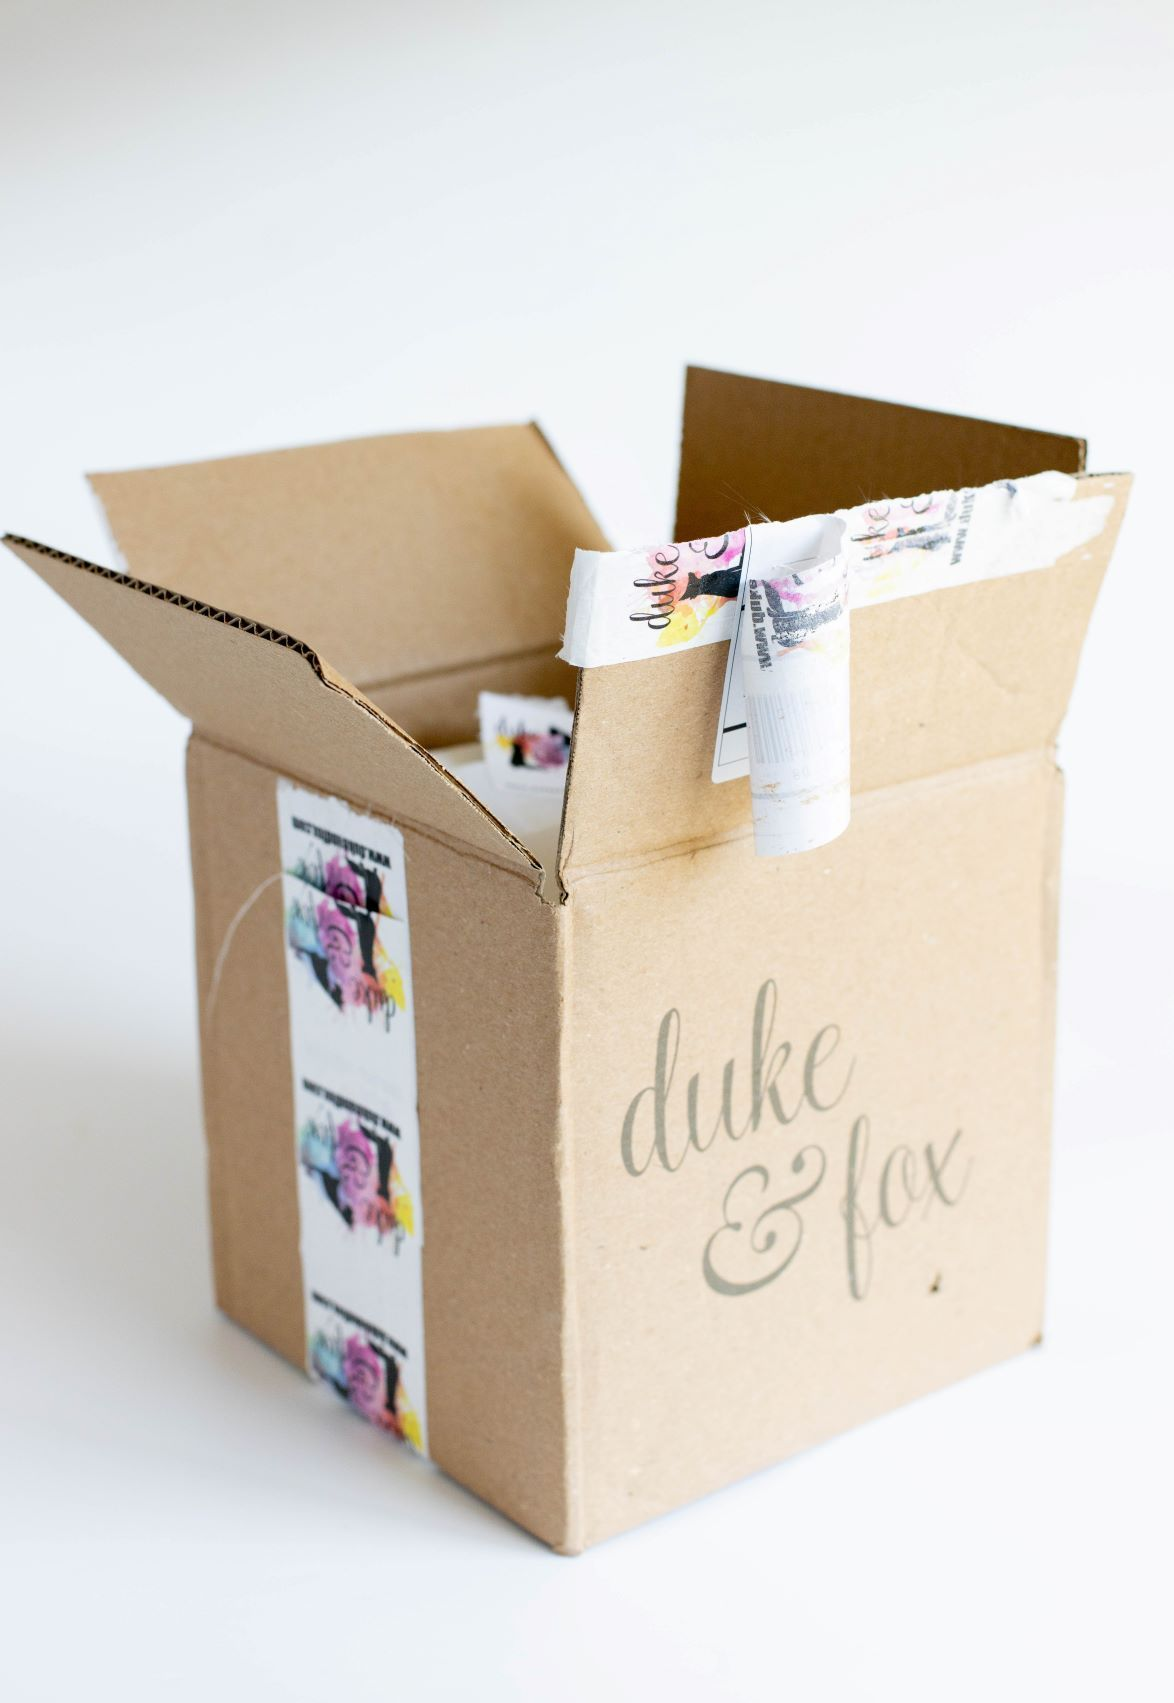 The Summer Duke & Fox Dog Box